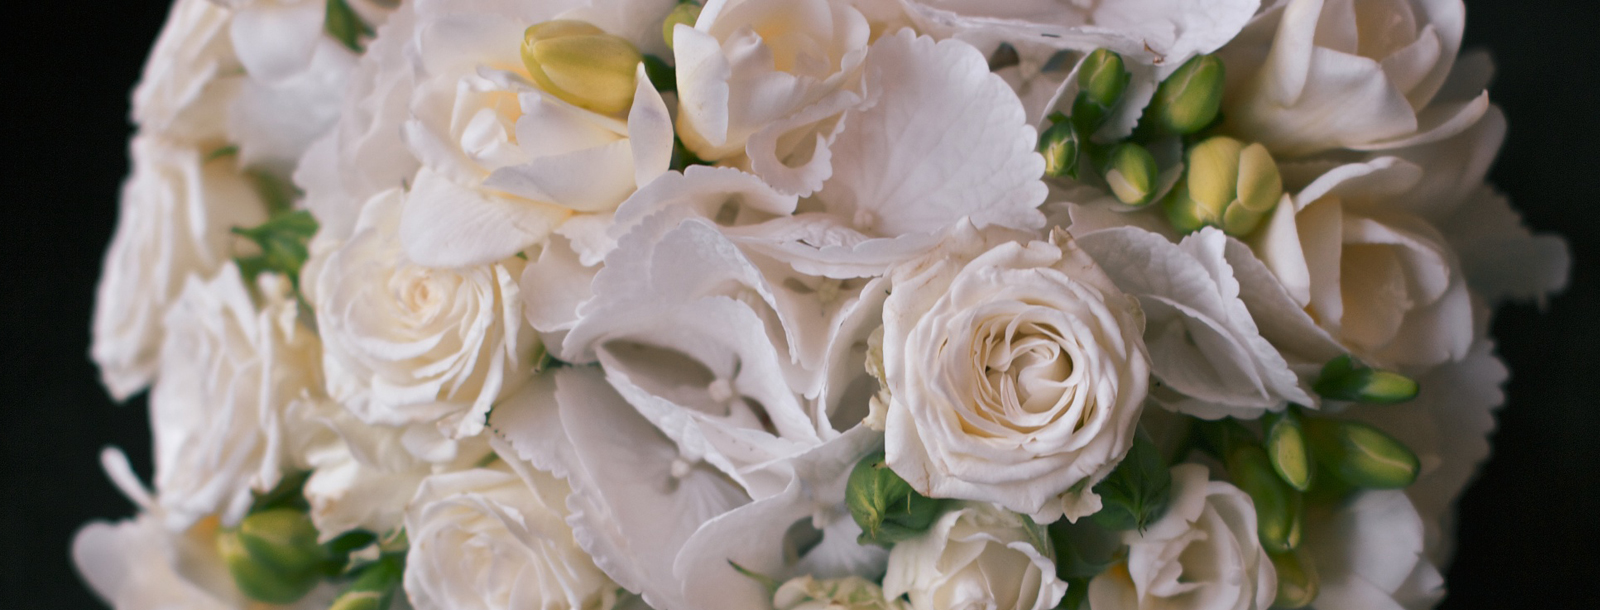 Inspiration for all things wedding!